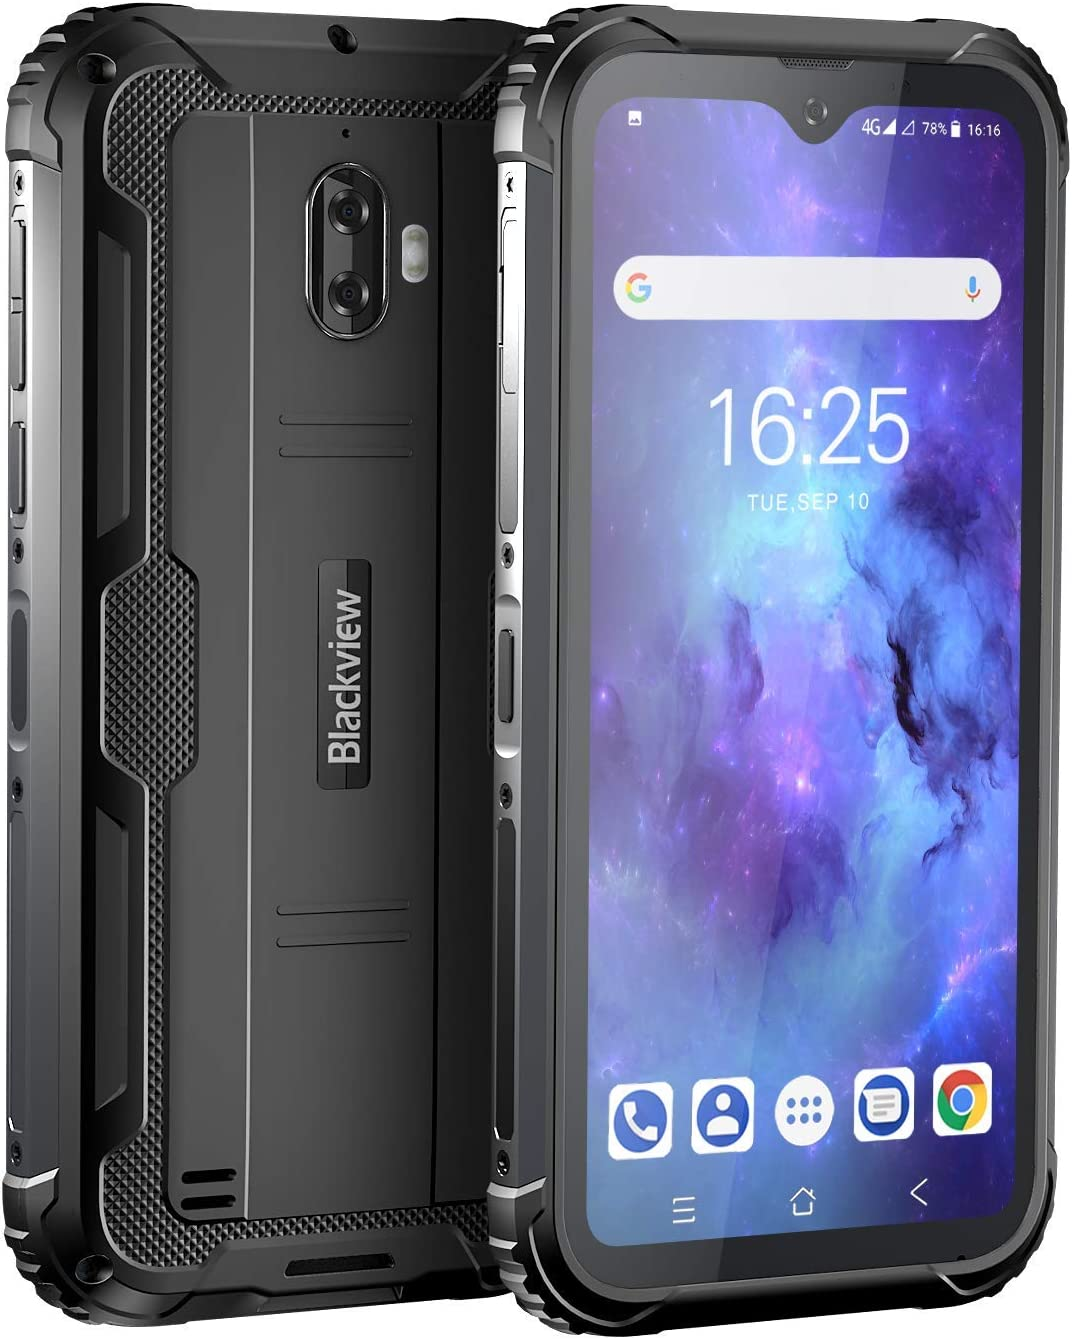 """Unlocked Rugged Smartphones, Blackview BV5900 4G LTE Rugged Cell Phones with Android 10 IP68 Waterproof Drop Proof, 5.7"""" Screen 3GB+32GB Dual SIM 5580mAh Battery for GSM T-Mobile, Black"""